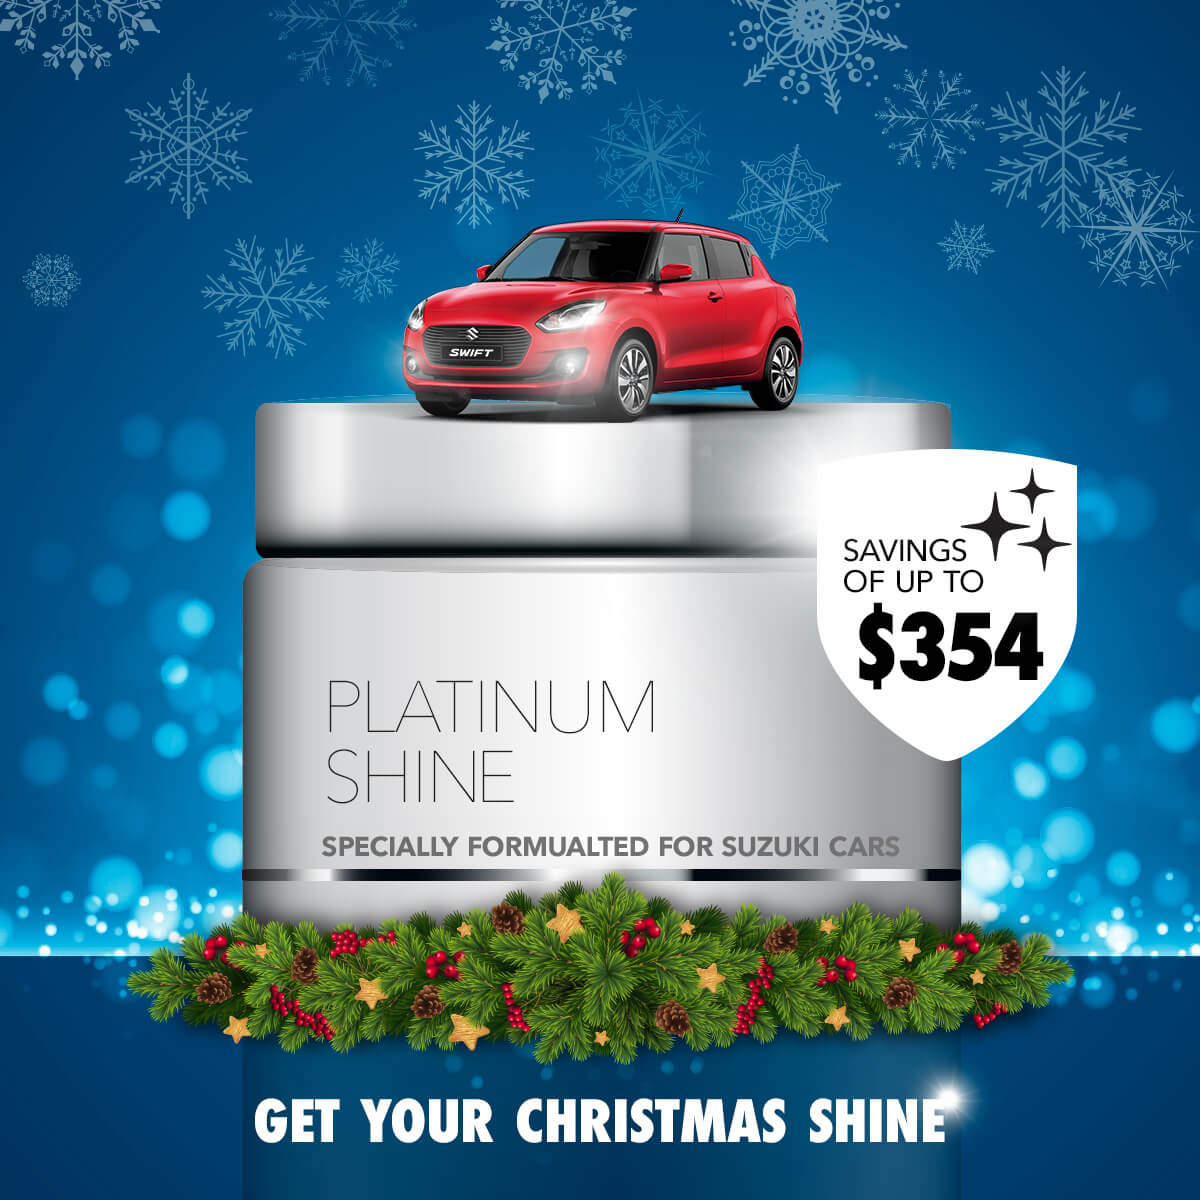 Suzuki Platinum Shine Offer